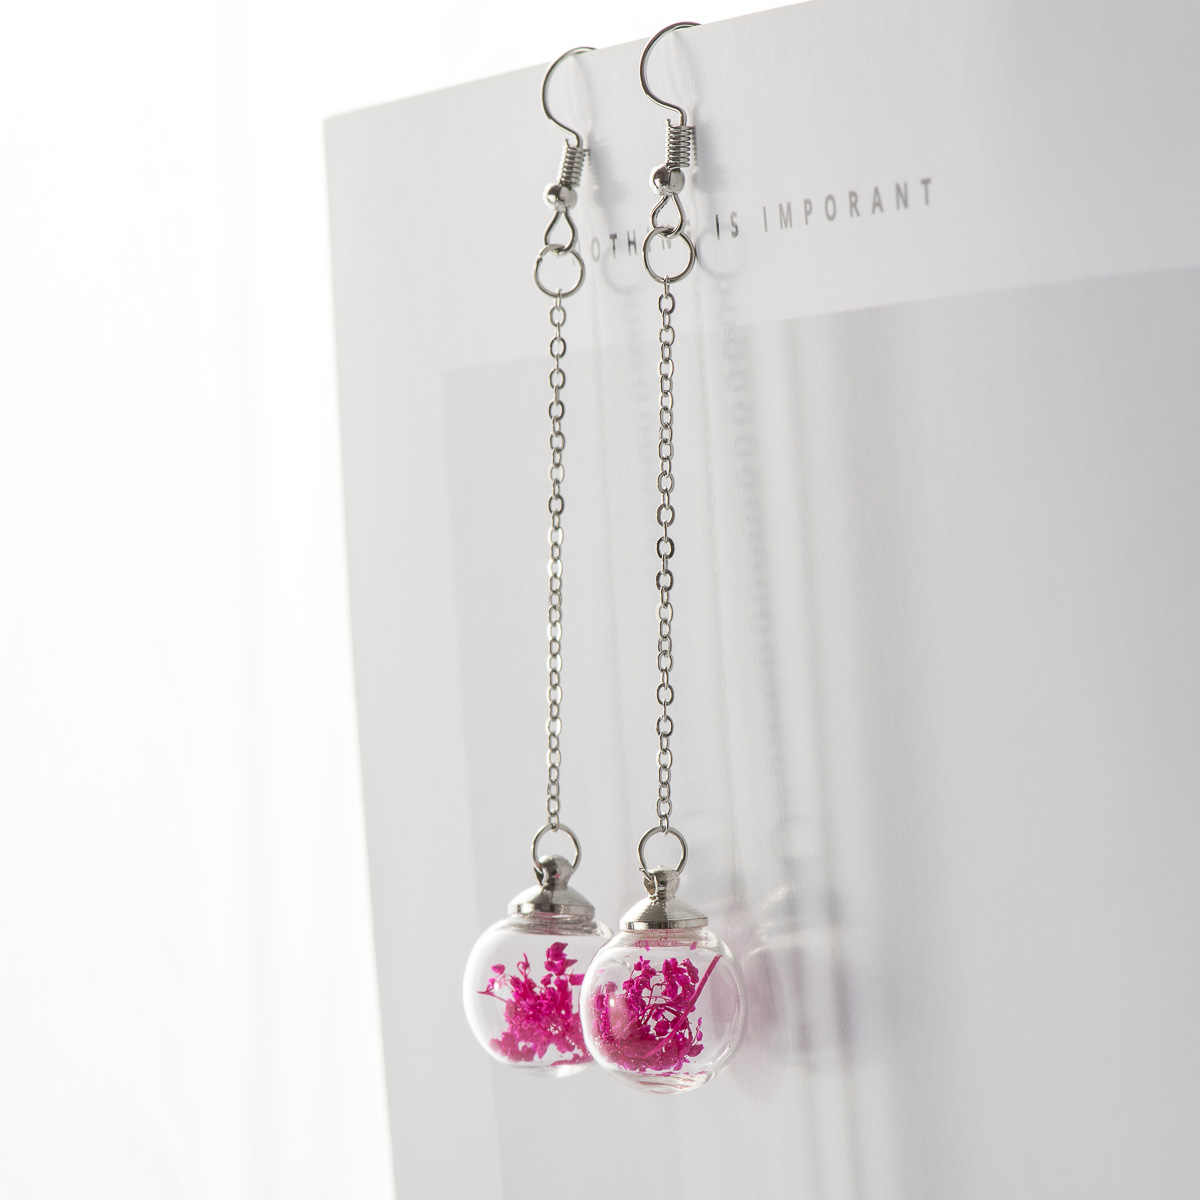 Flower Eardrop Dried Flower In Glass Ball Earrings Fantasy DIY Ear Lines Dangle Earring For women #HZ201